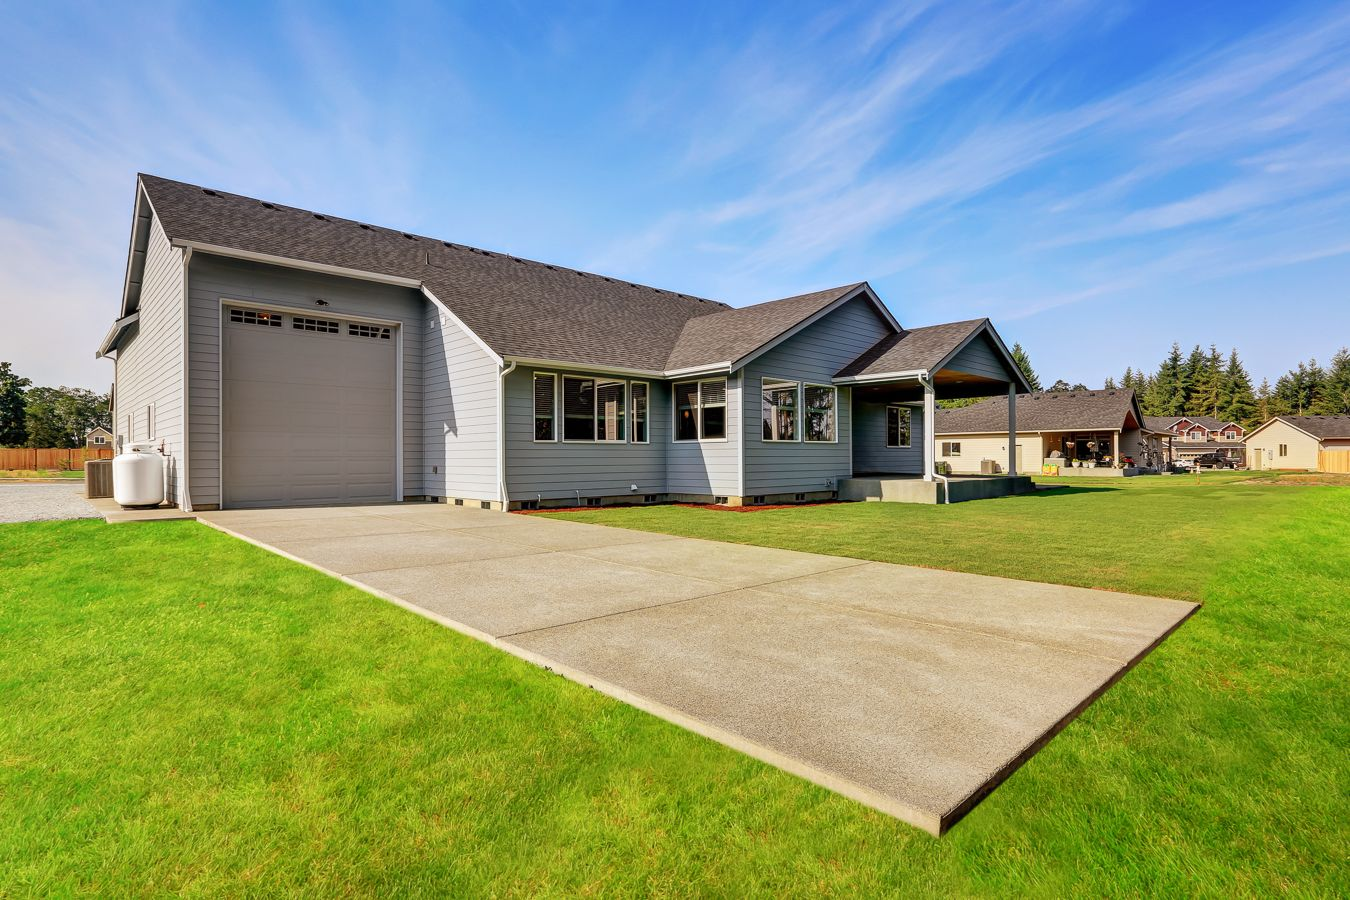 This Rv Garage Bay Attached To The House Features A Full Sized Rv Door On The Front And Back Home Design Plans Rv Garage Real Estate